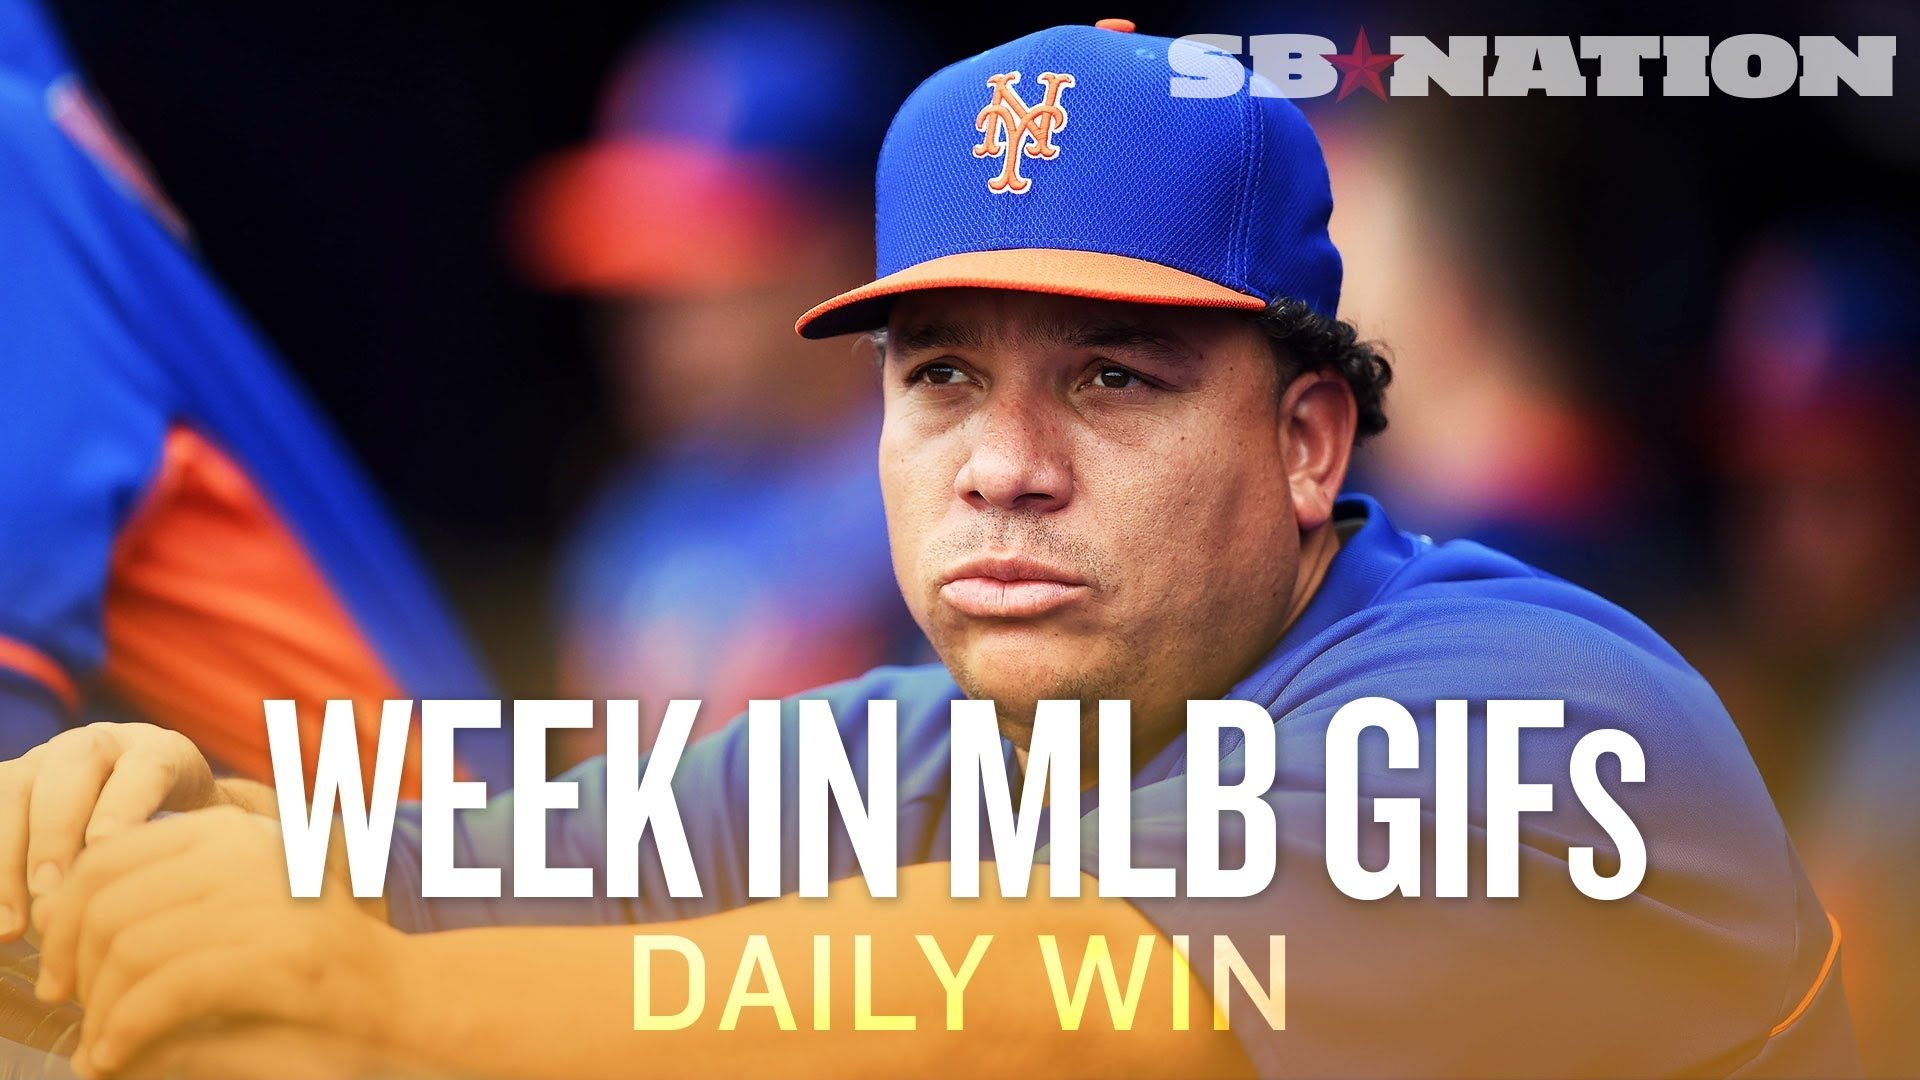 The best MLB GIFs of the week (Daily Win)